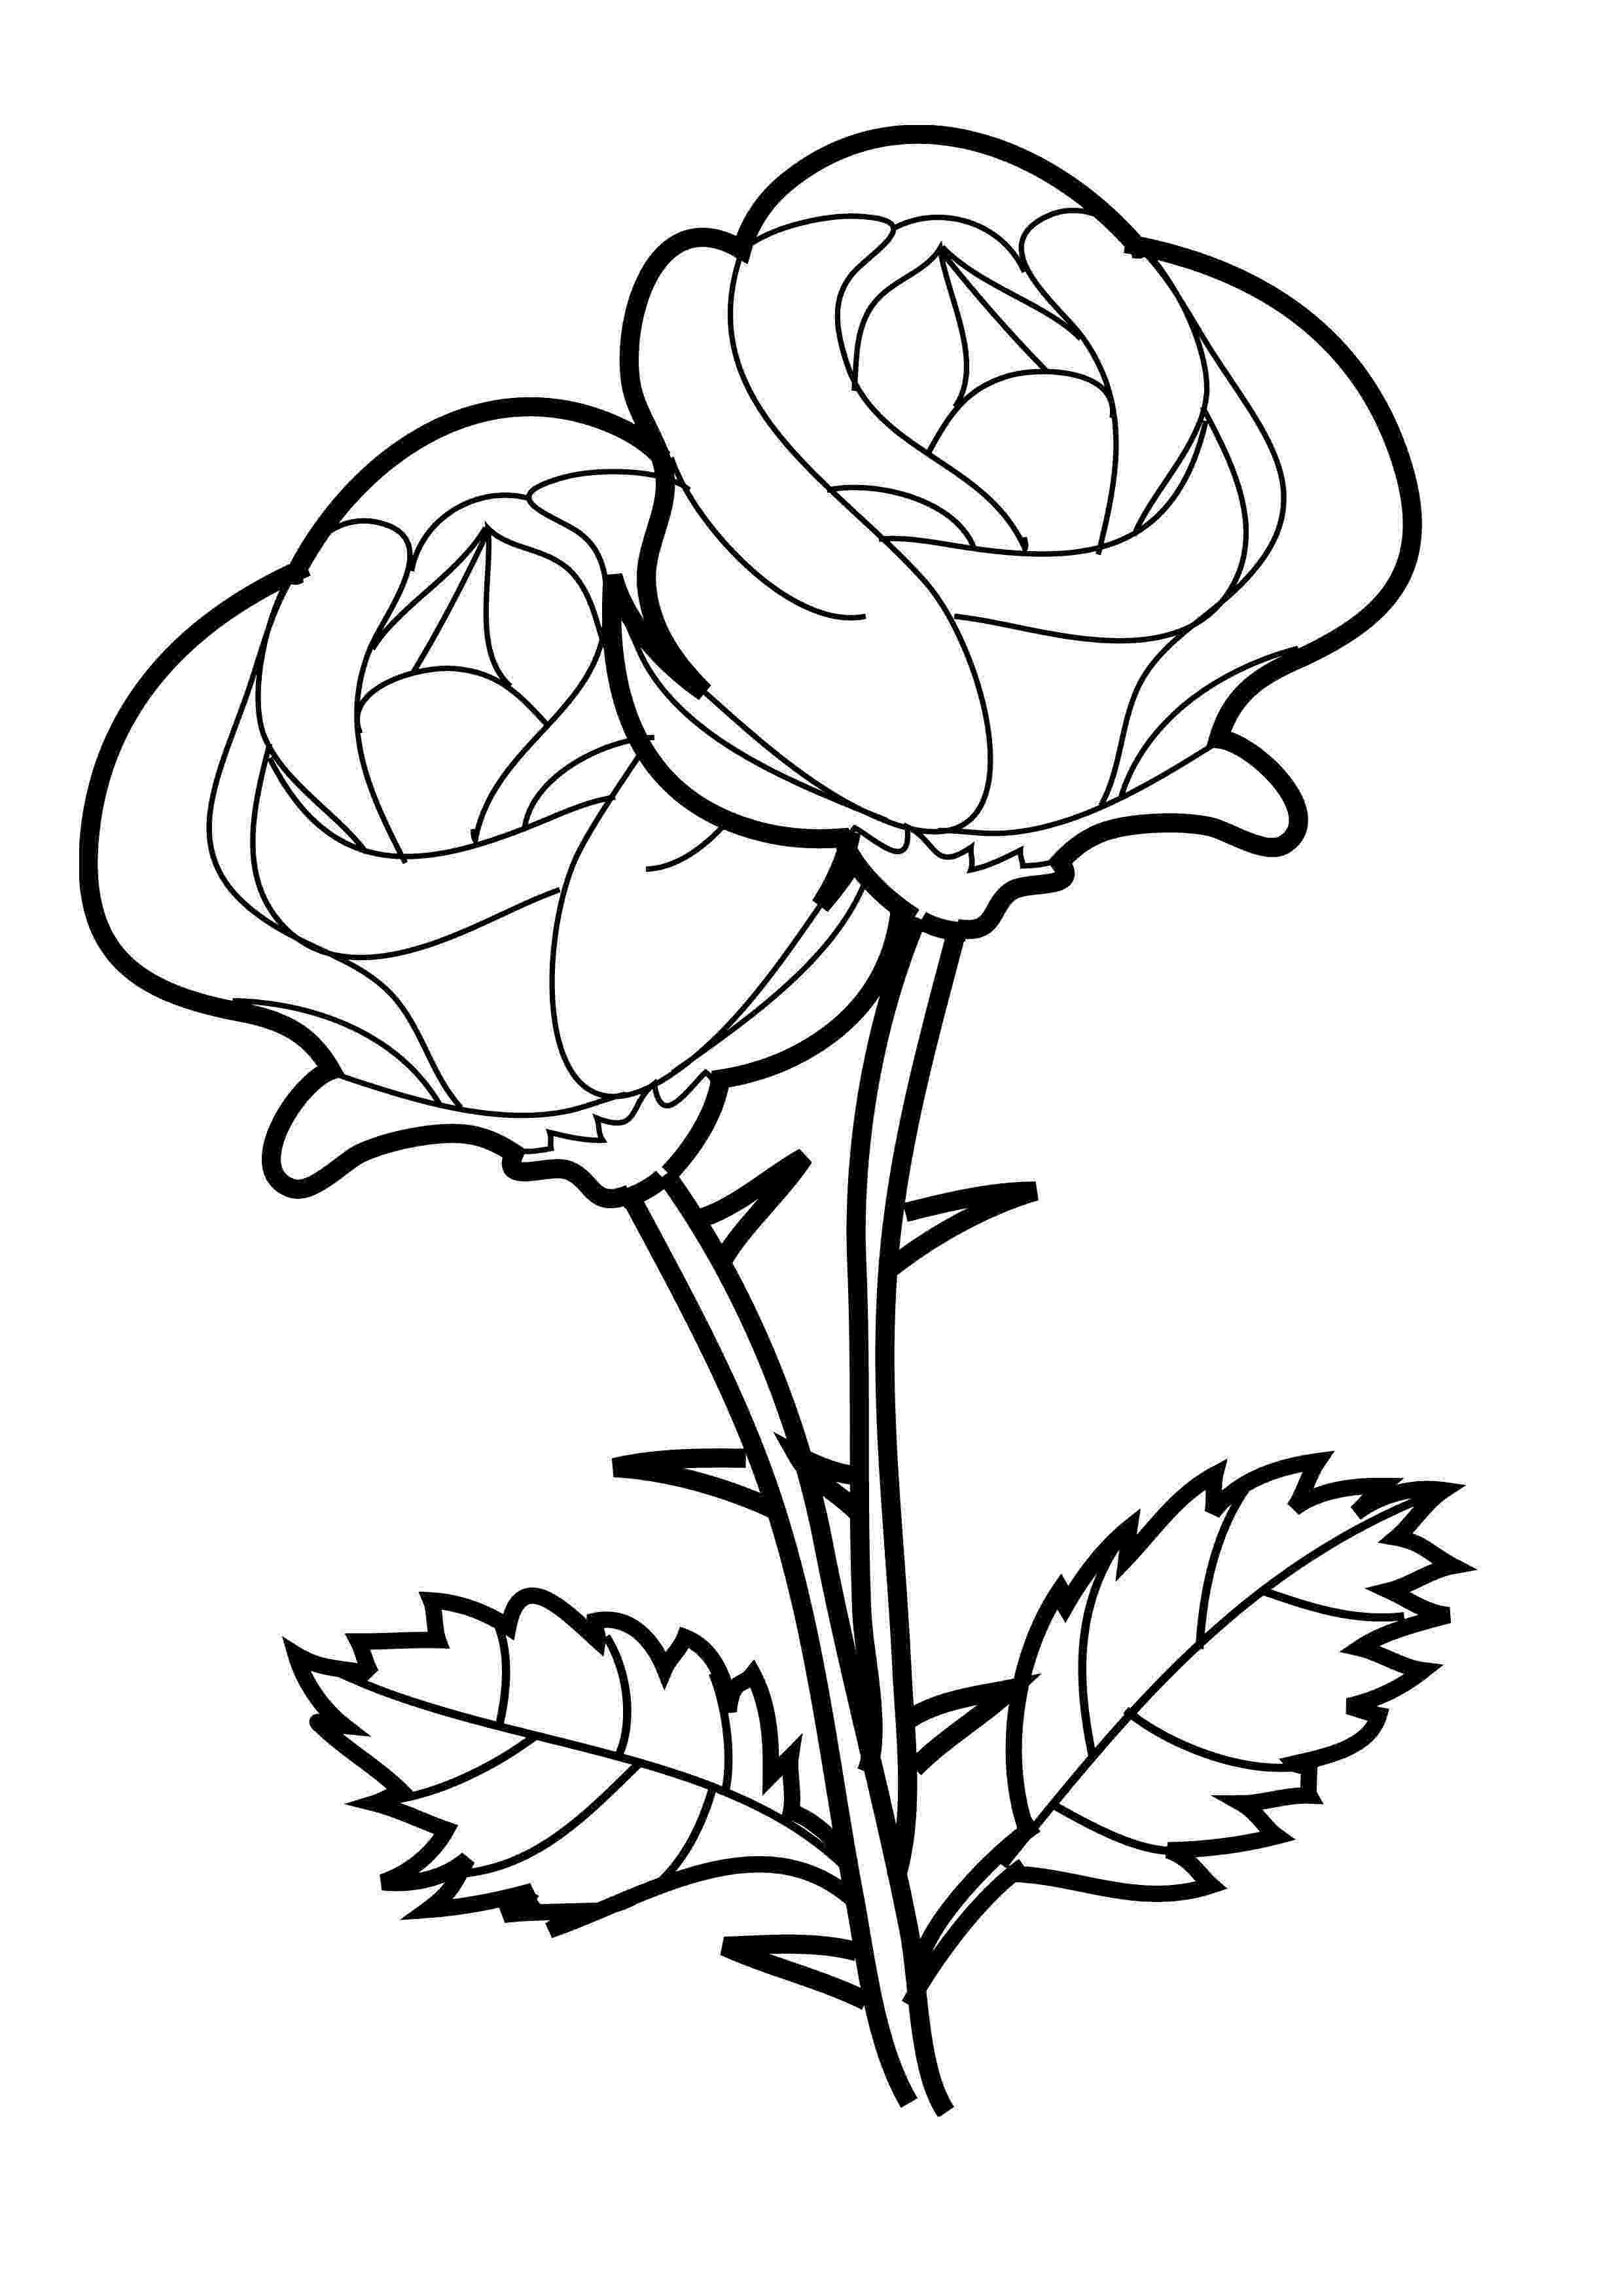 rose coloring pages free printable rose coloring pages for kids cool2bkids coloring free pages rose